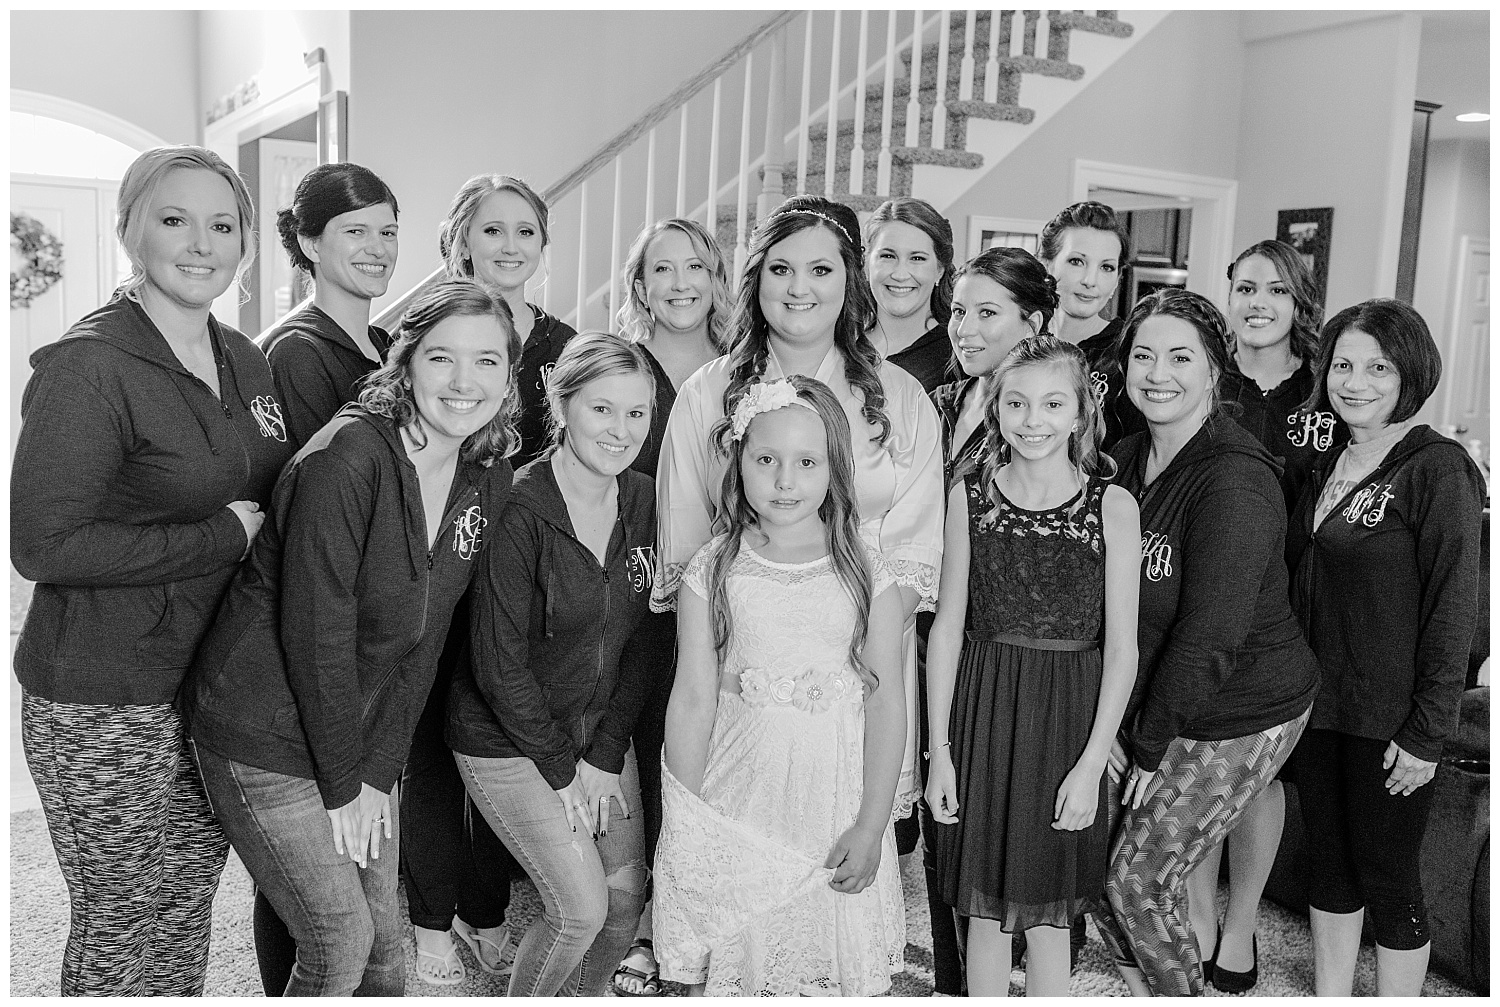 A Black and Gold Catholic Church Wedding in Wilkes Barre Pennsylvania by lehigh valley pennsylvania based wedding and lifestyle photographer Jeannie Lytle of Lytle Photography   Company (9).jpg